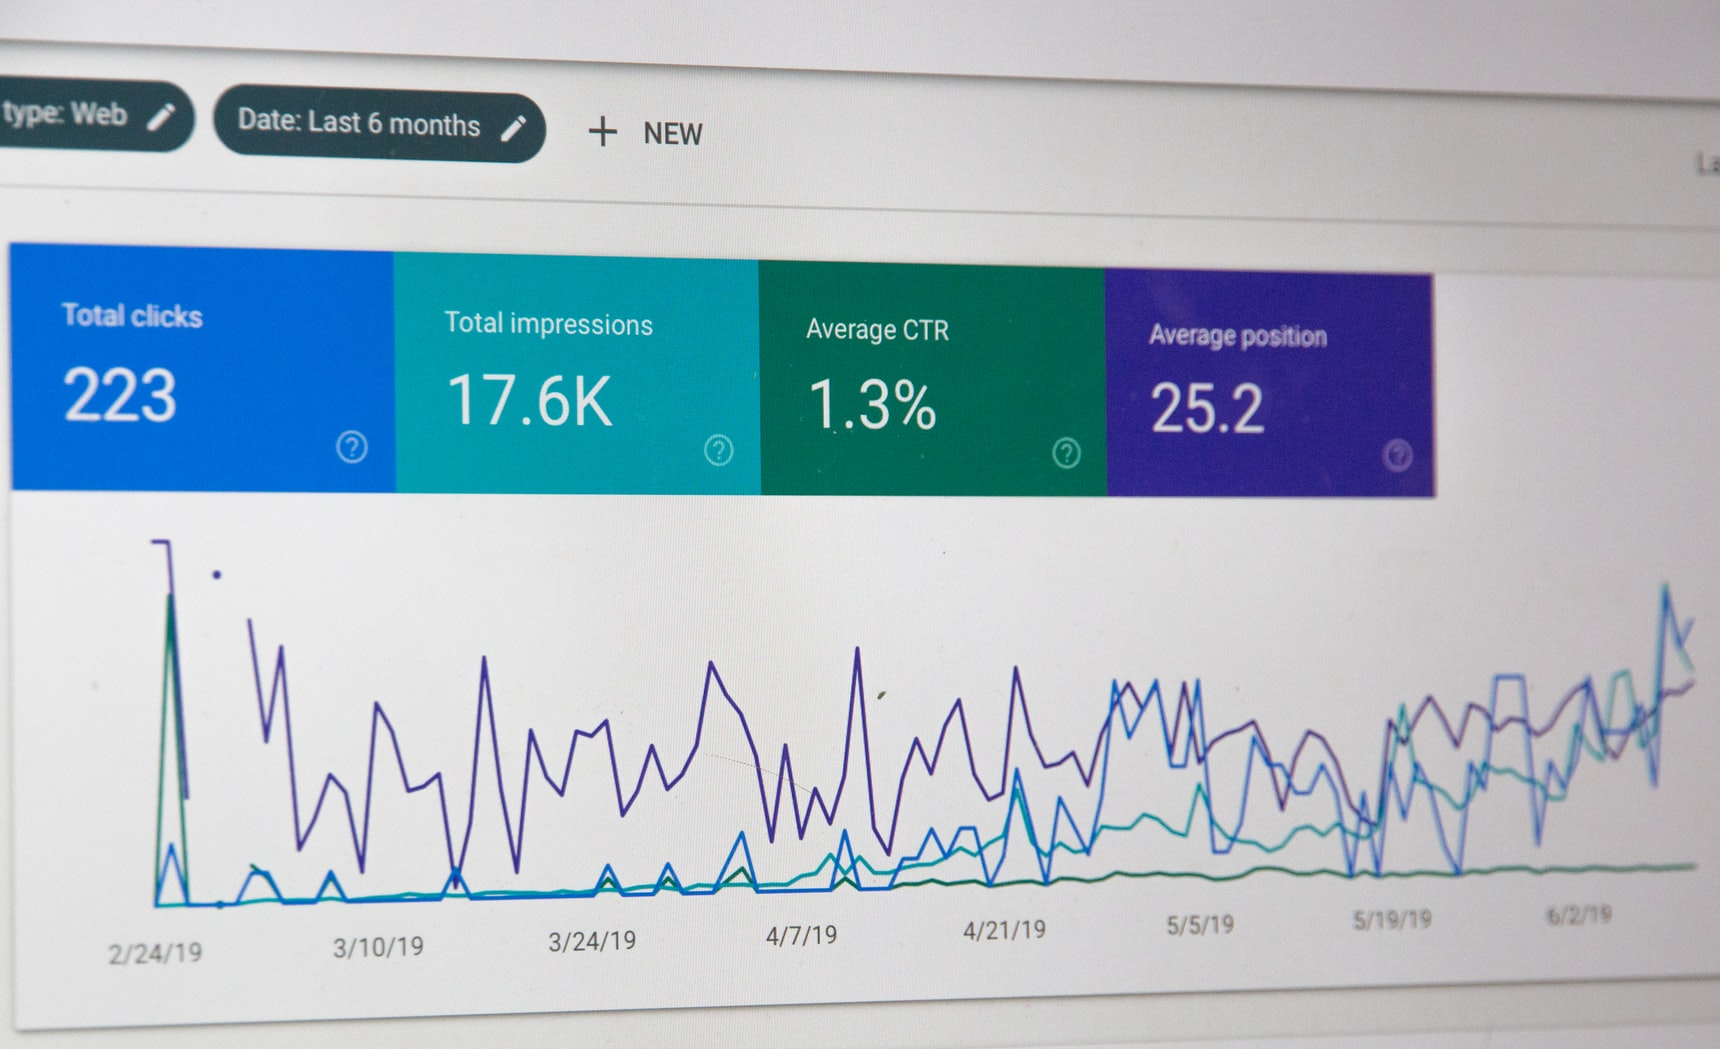 google search console dashboard generates data on website